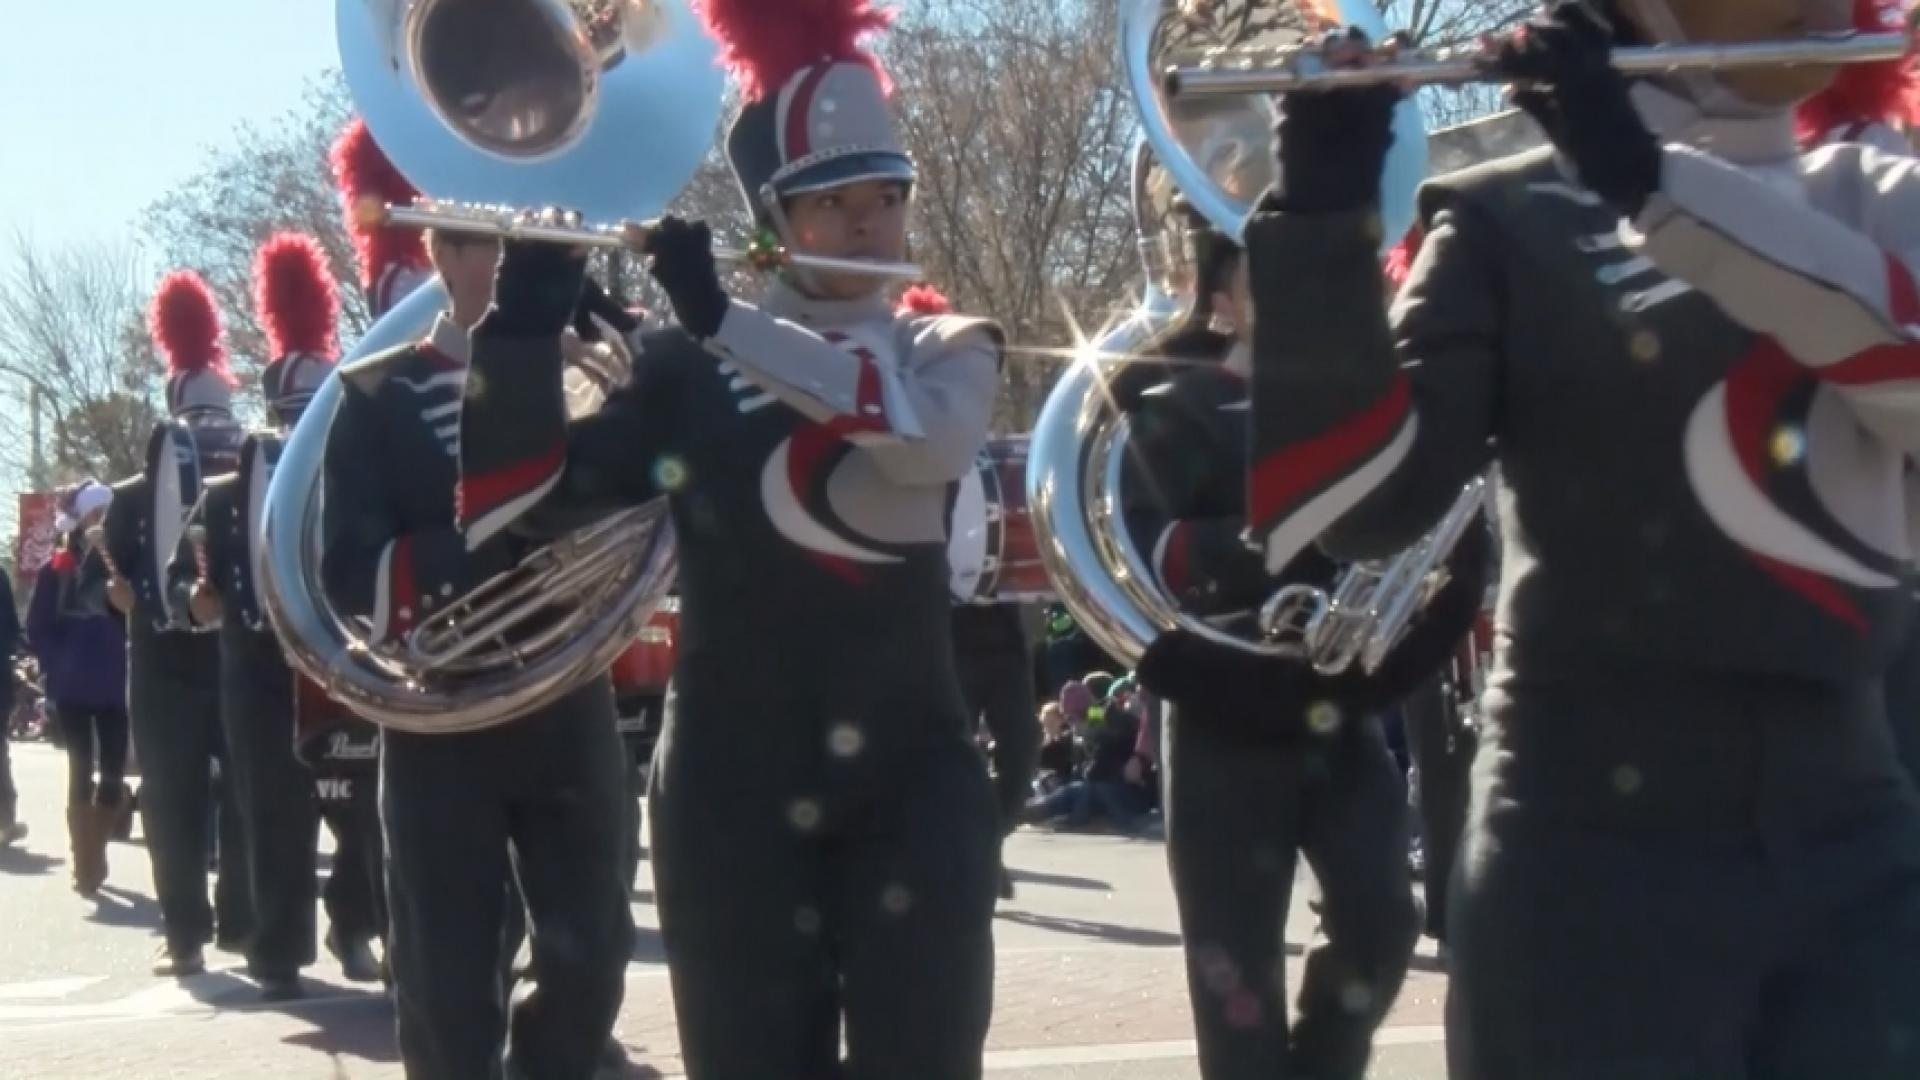 N. Carolina towns cancel Christmas parades, cite protest threats over Confederate groups